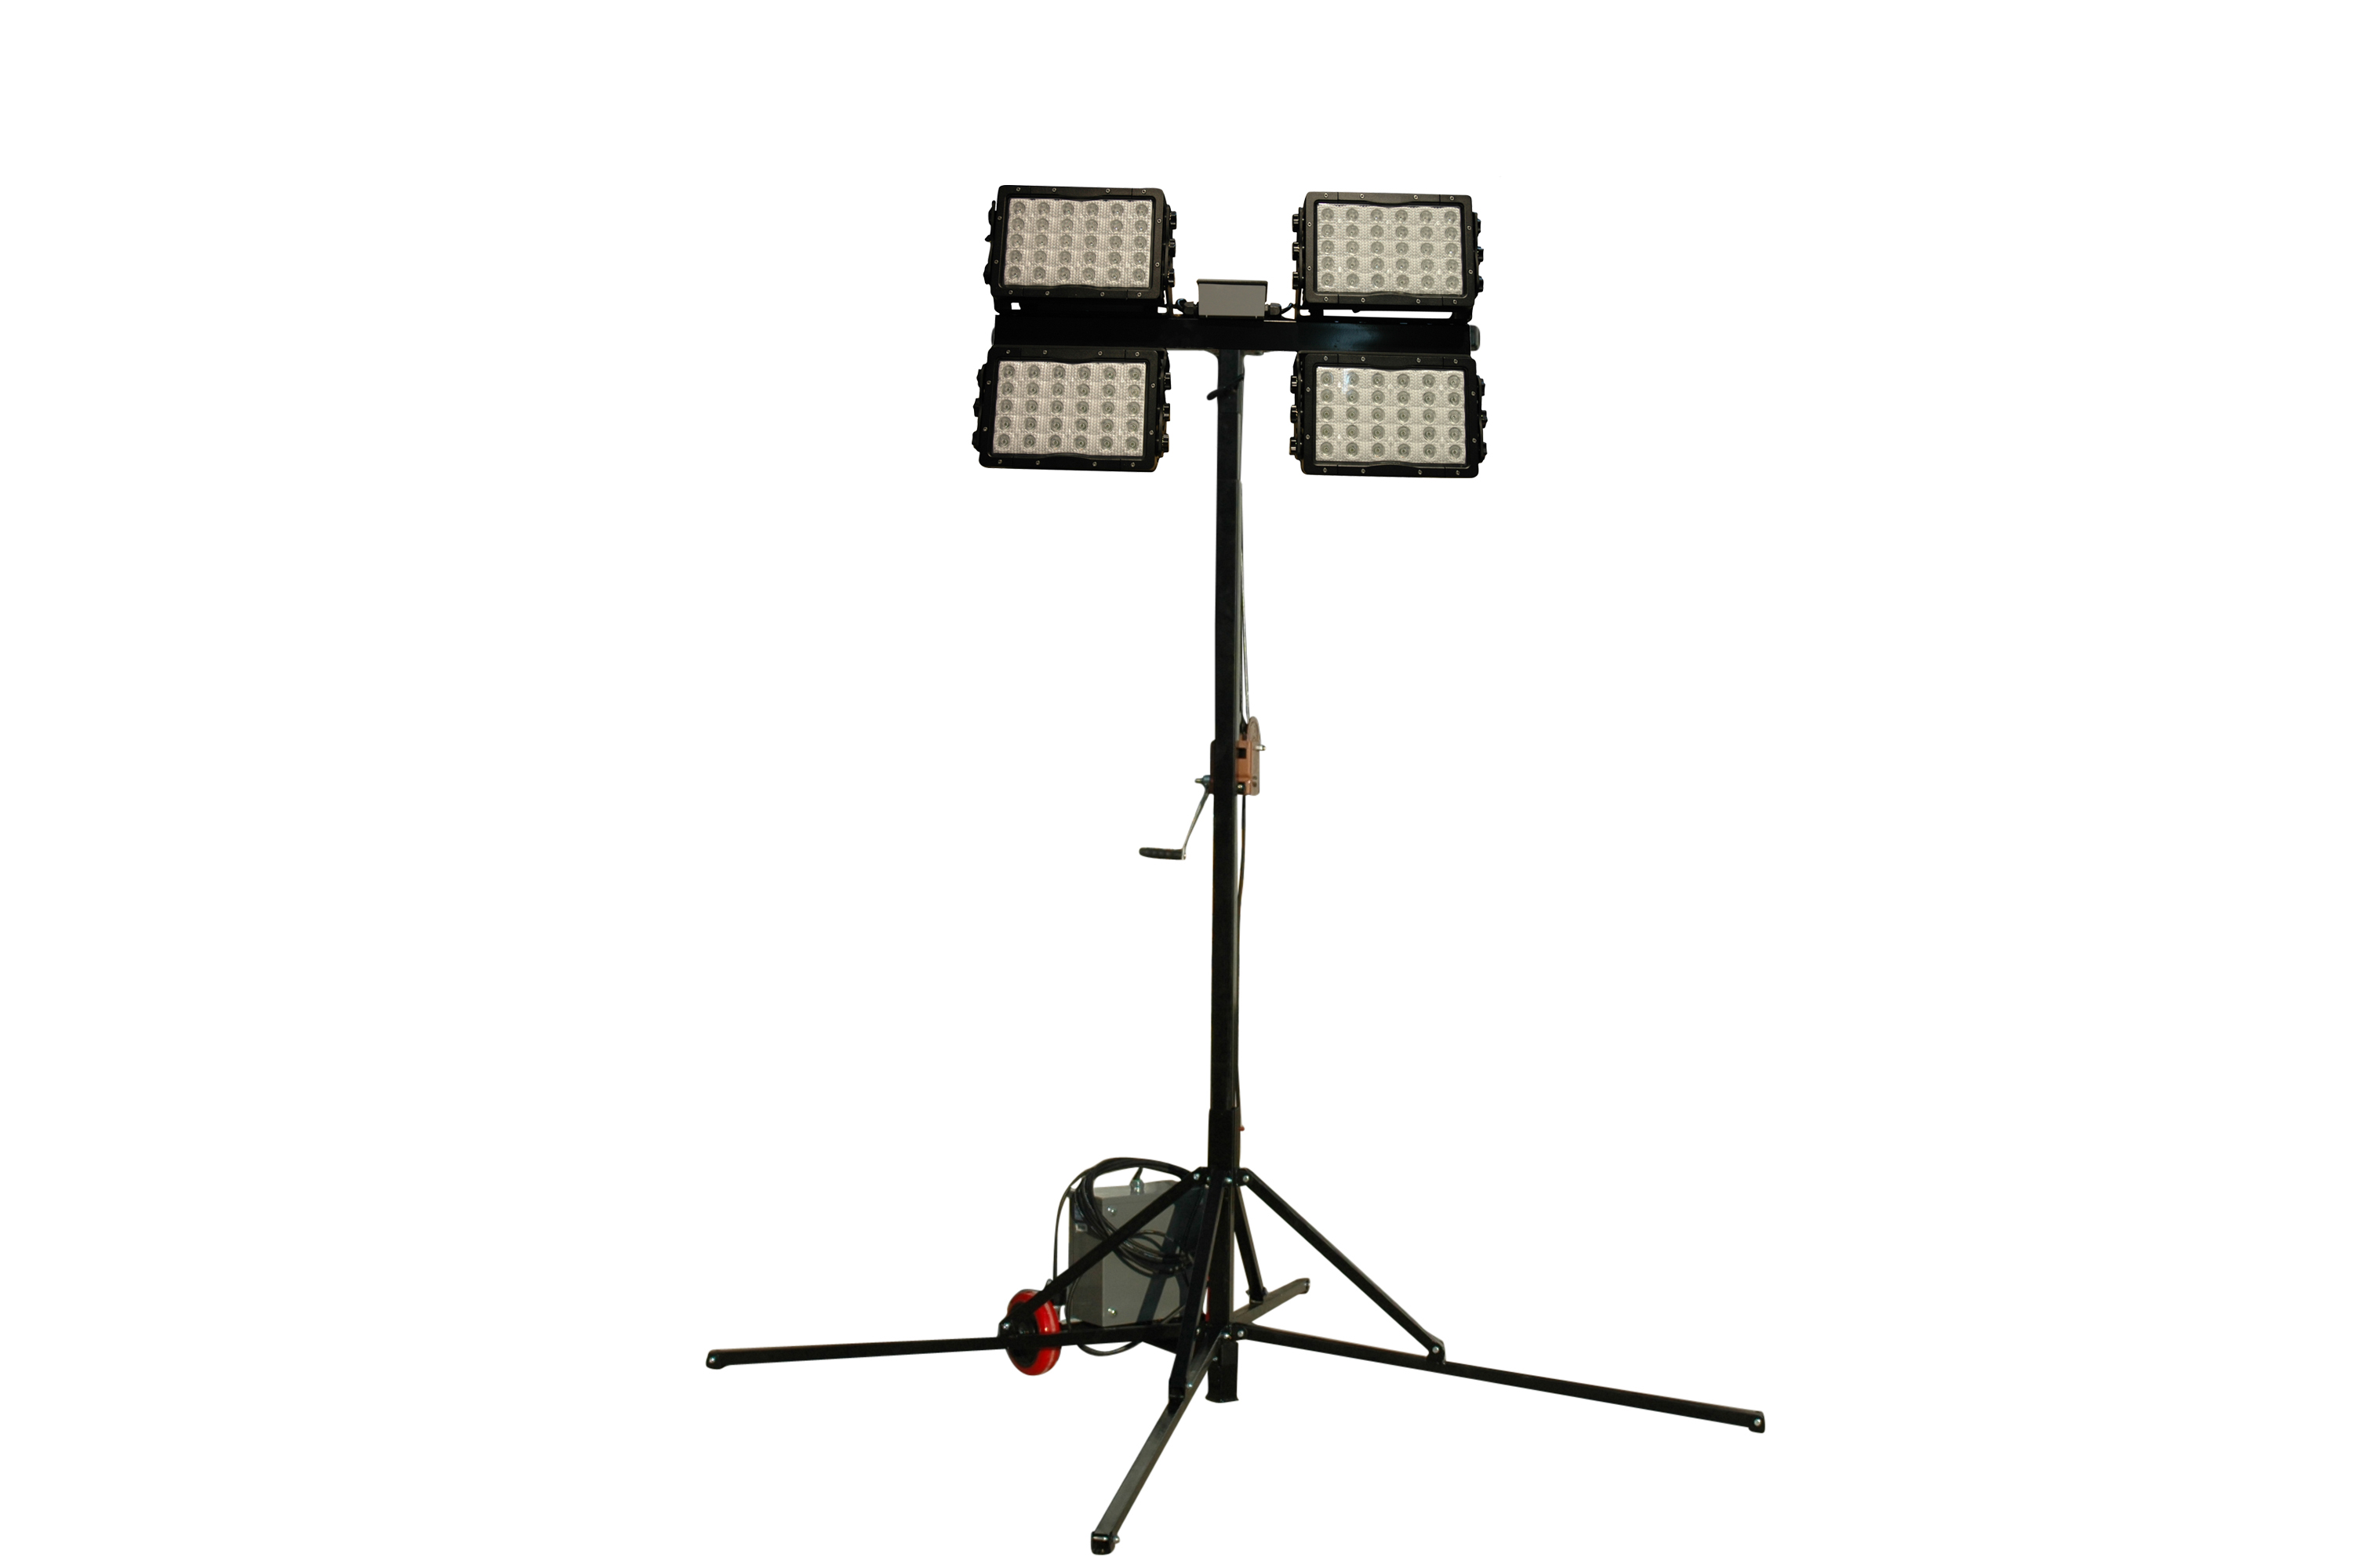 New Light Tower From Magnalight Com Provides High Output